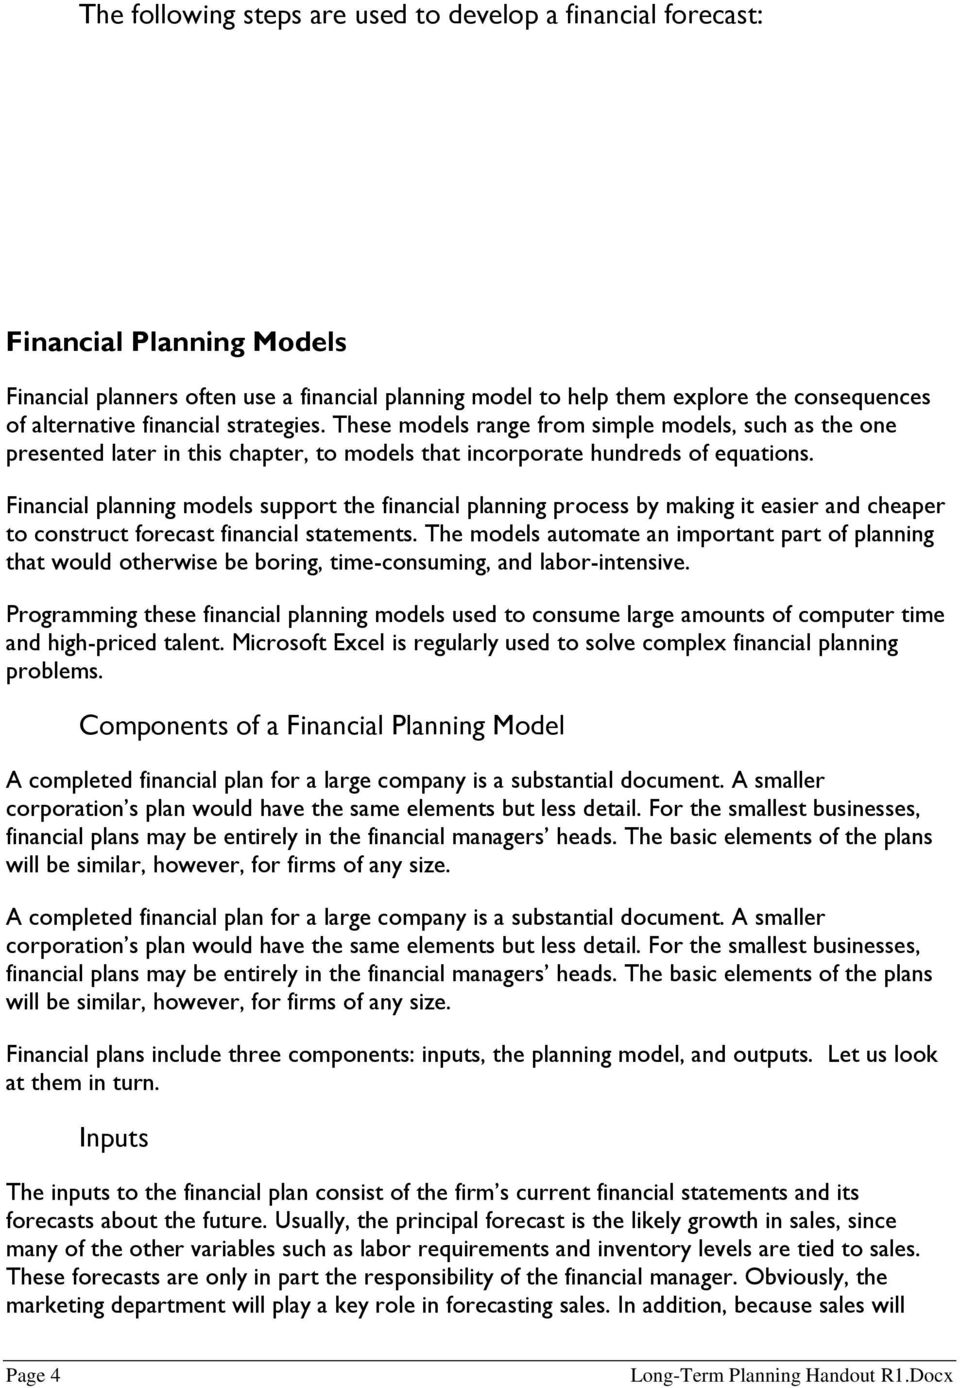 Financial planning models support the financial planning process by making it easier and cheaper to construct forecast financial statements.